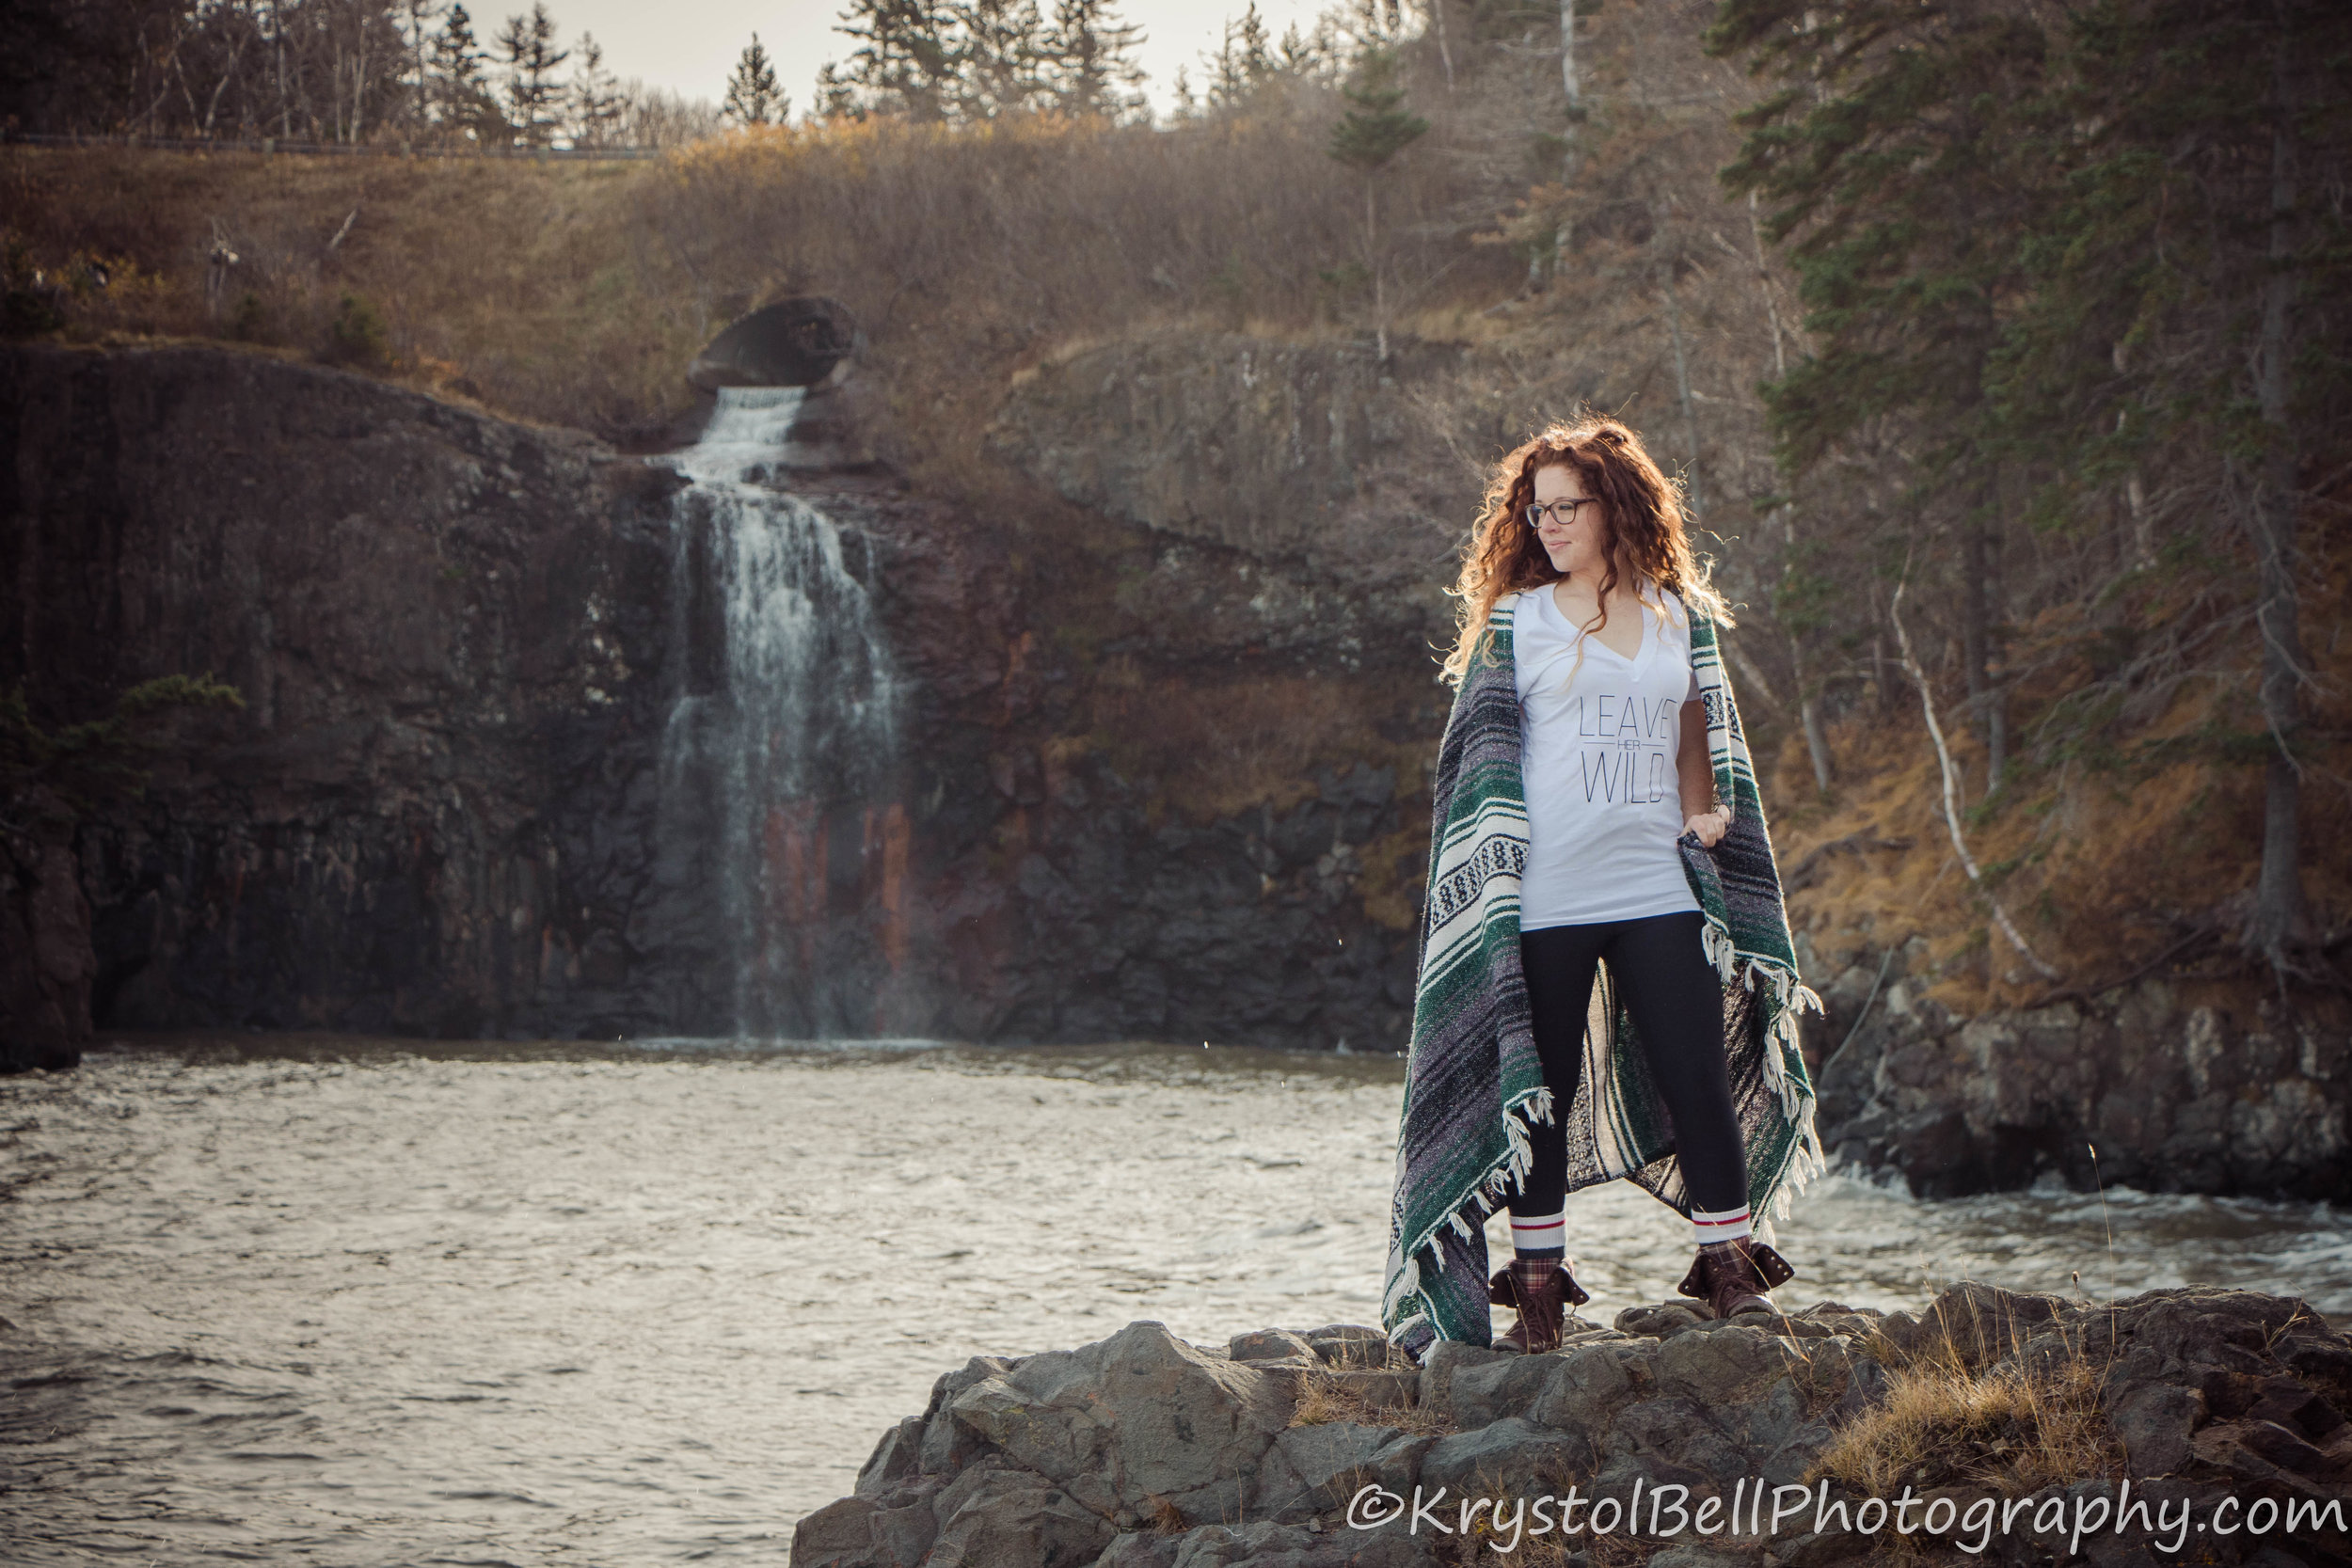 Sarah was modeling another shirt from Run Wild Child out at Baxter's Harbour.  Her hair, the clothing and blanket, the waterfall... it all goes so well together!